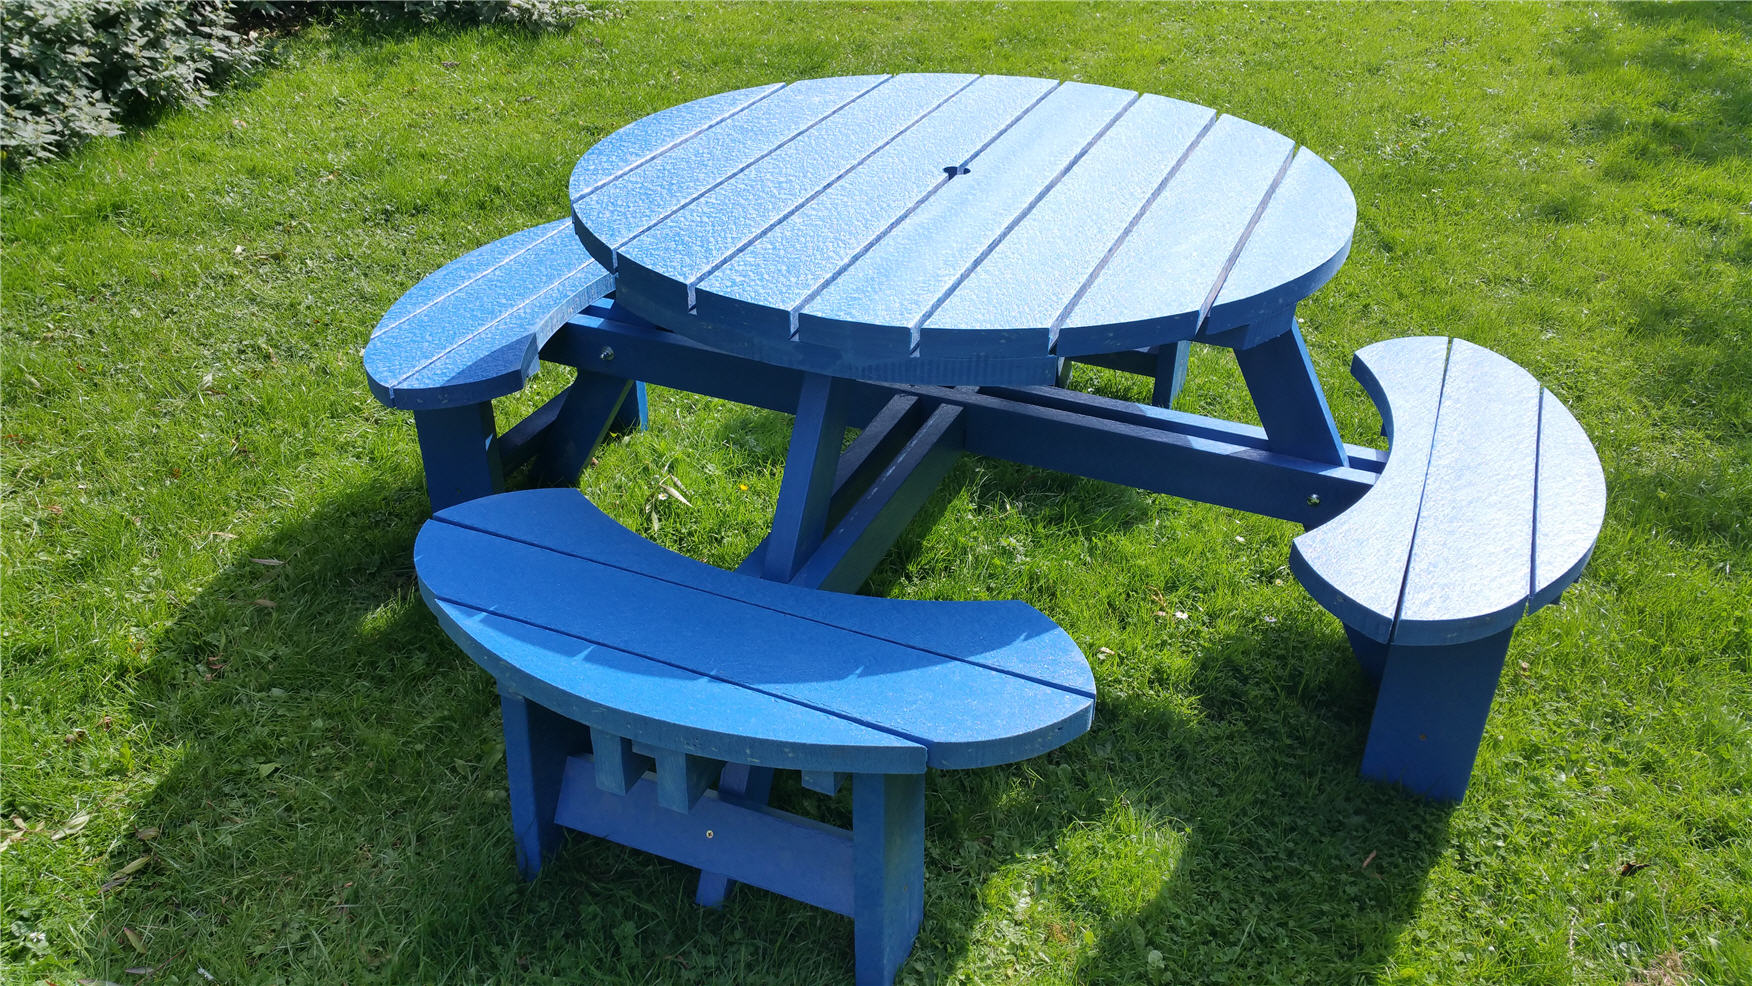 Composite Coloured Recycled Benchs And Tables